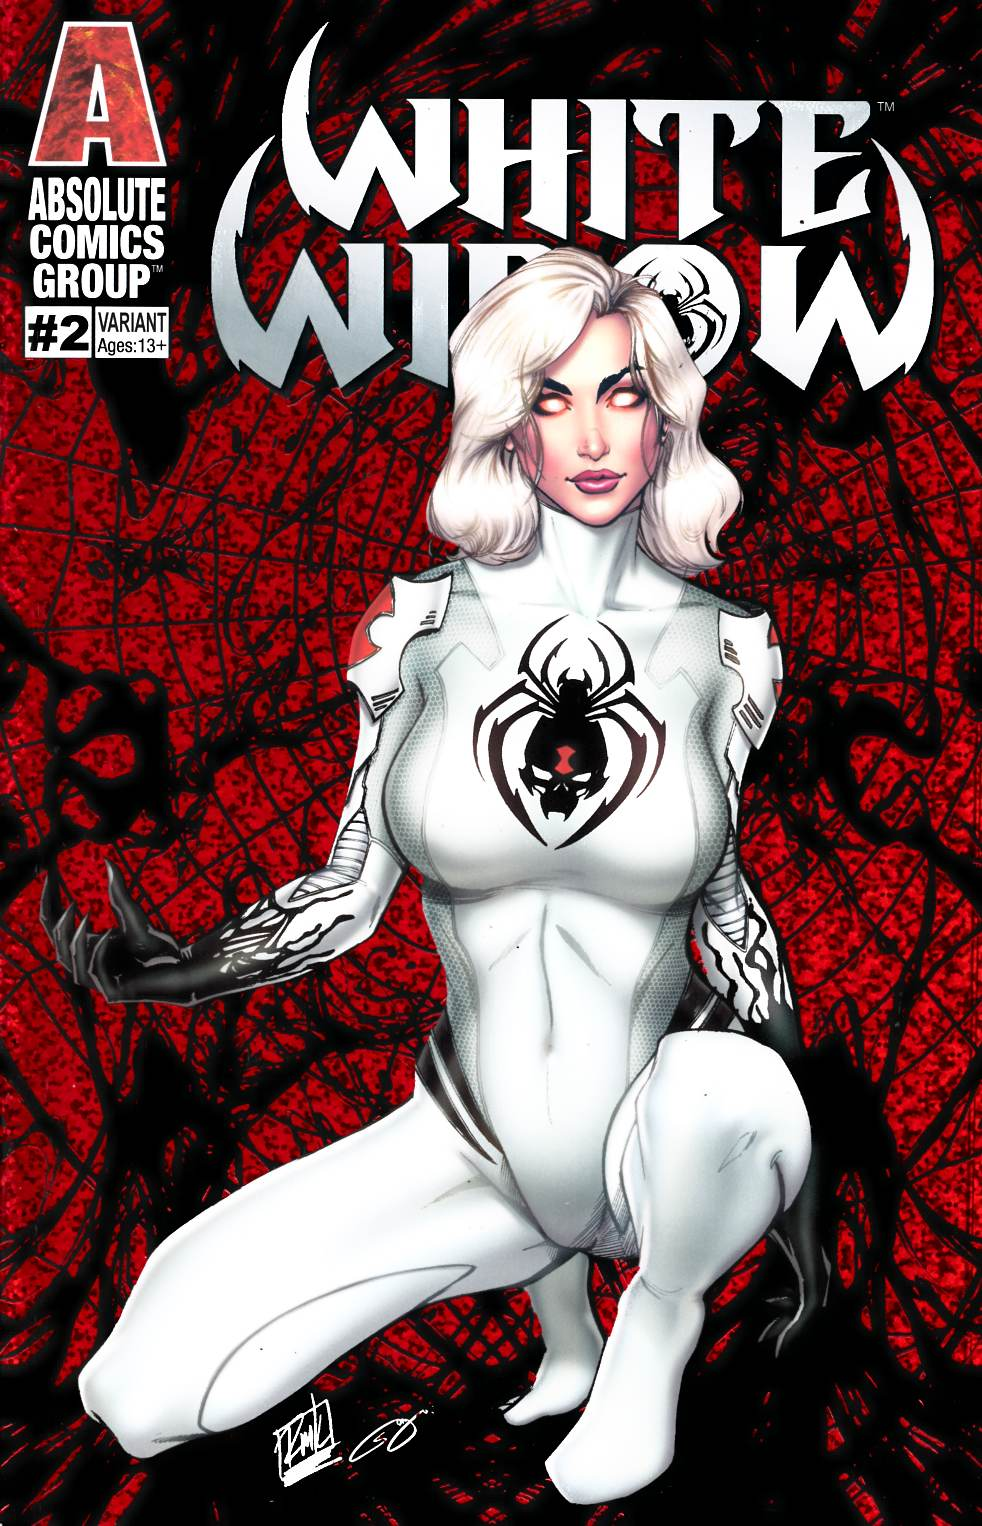 White Widow #2 Blood Webs Variant Cover Very Fine (8.0) [Absolute Comic] THUMBNAIL